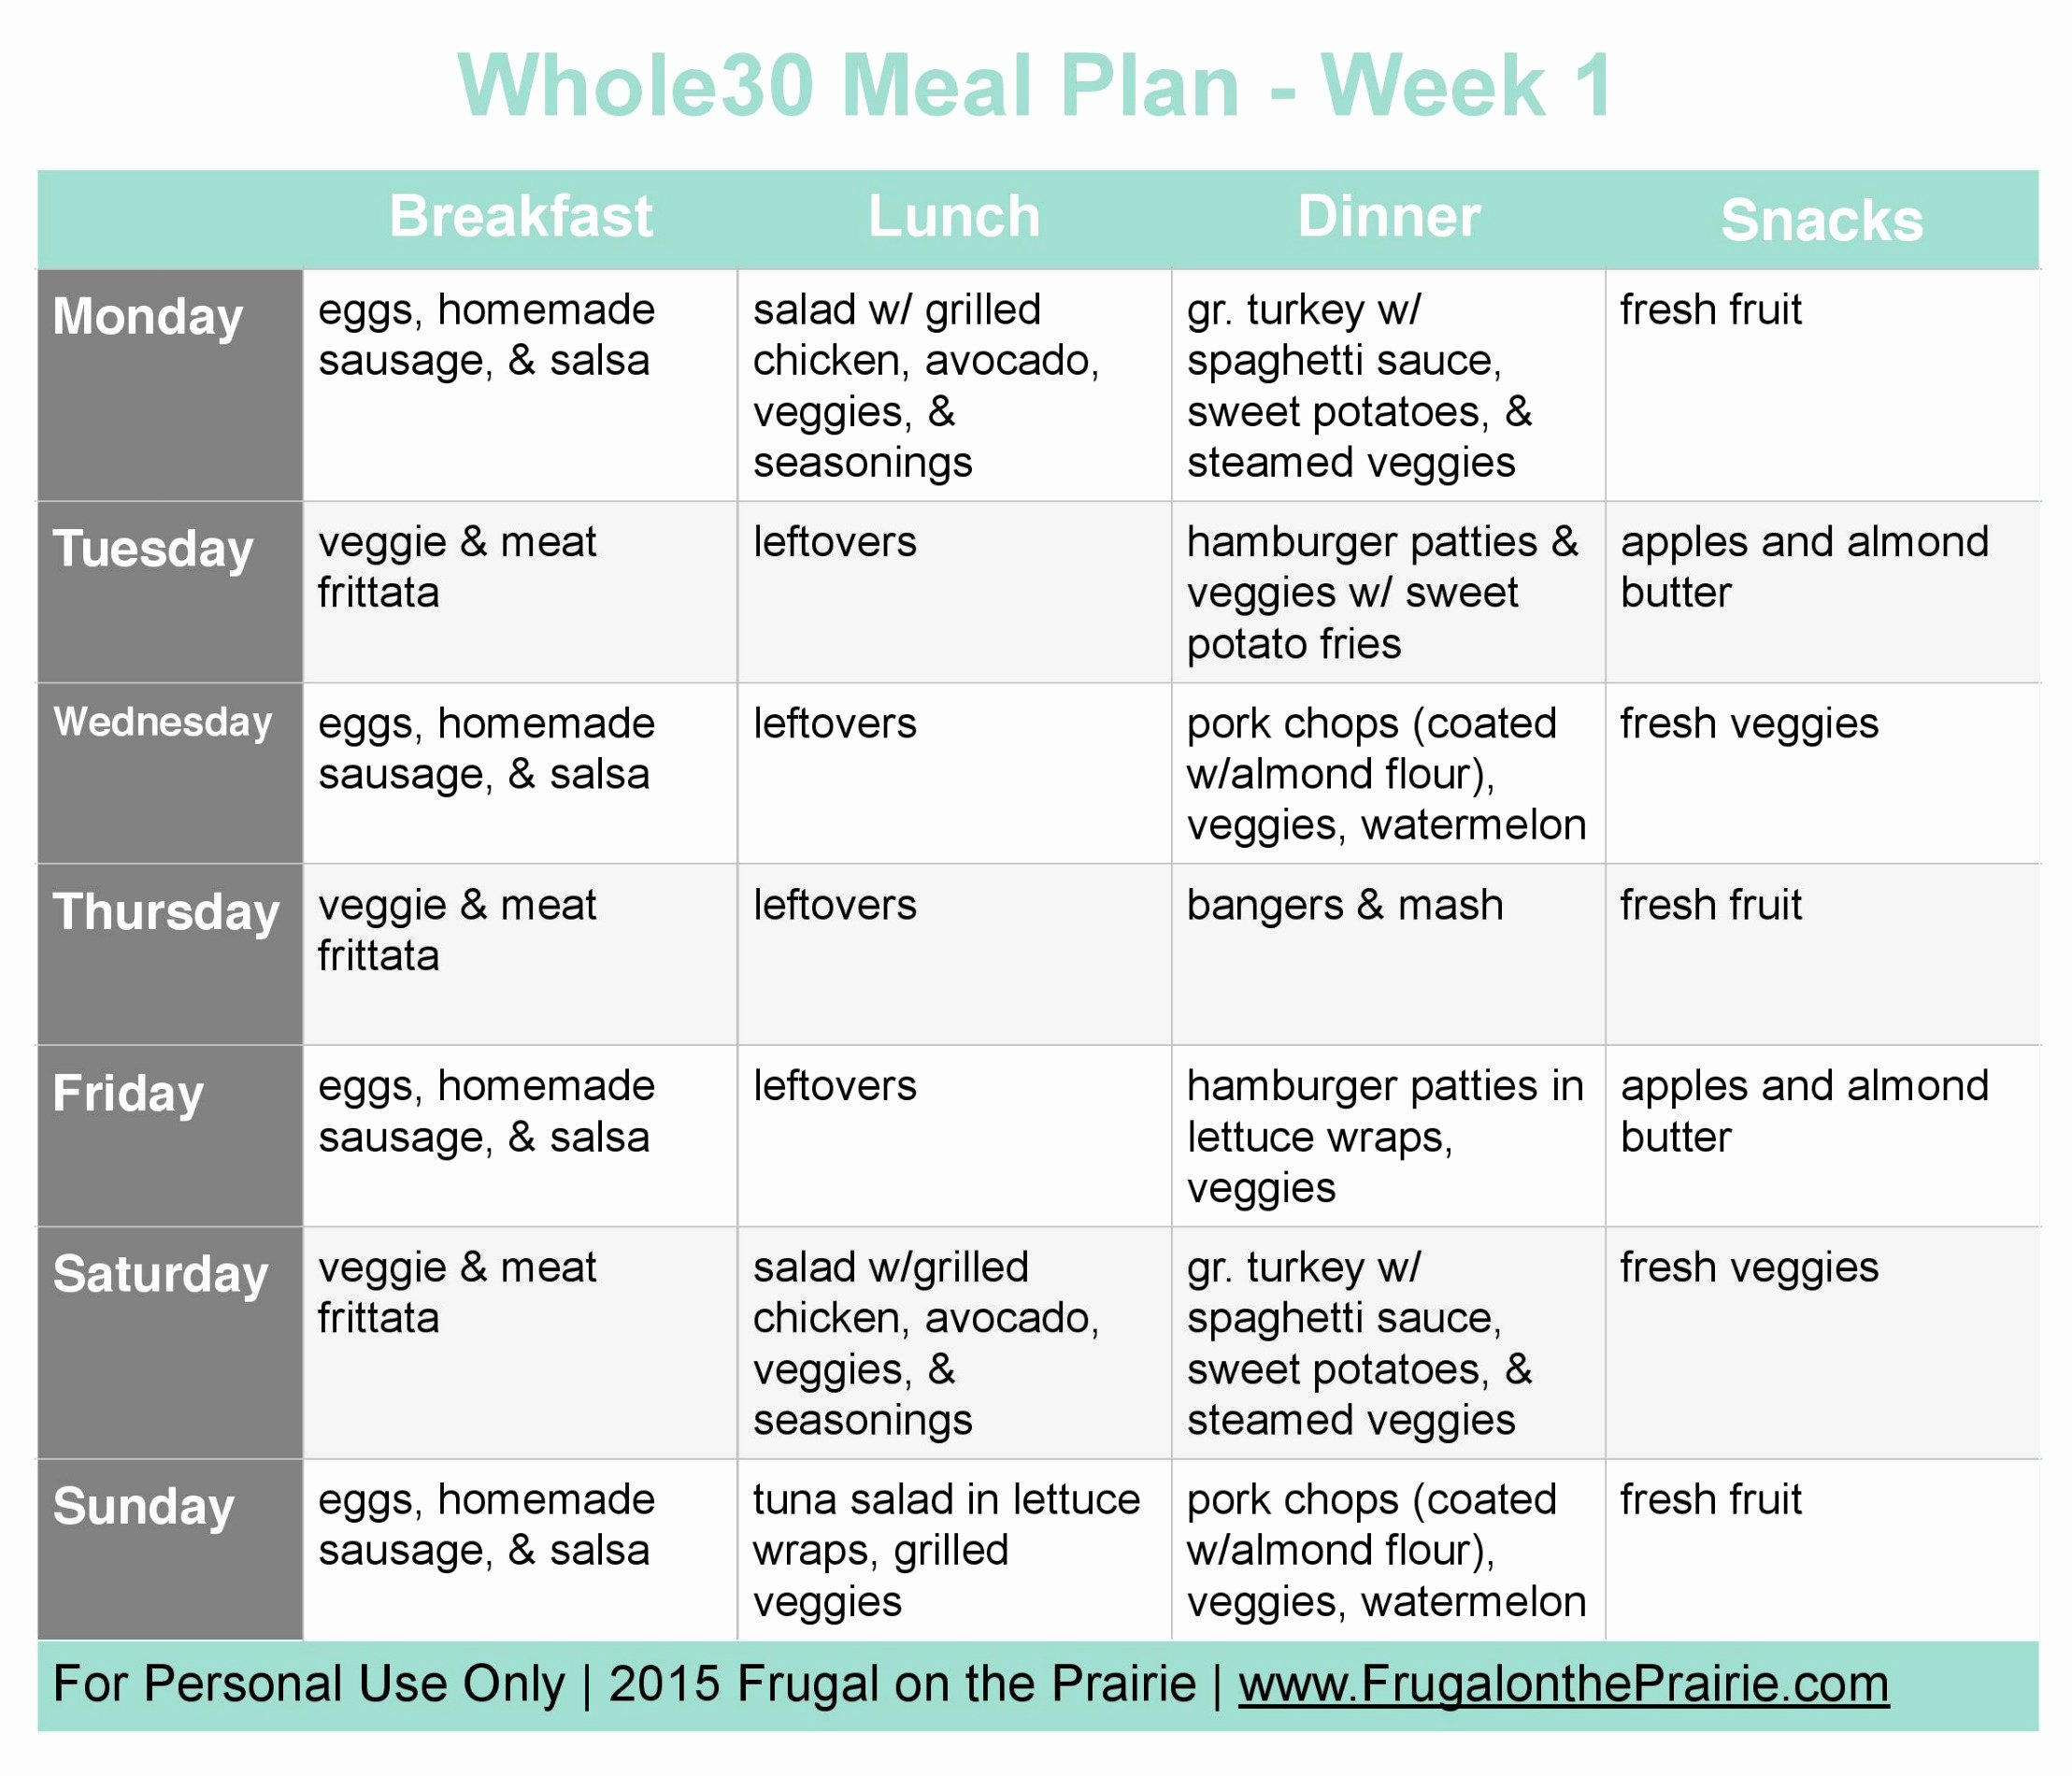 Whole 30 Meal Plan Template Fresh the Busy Person S whole30 Meal Plan Week 1 — Allison